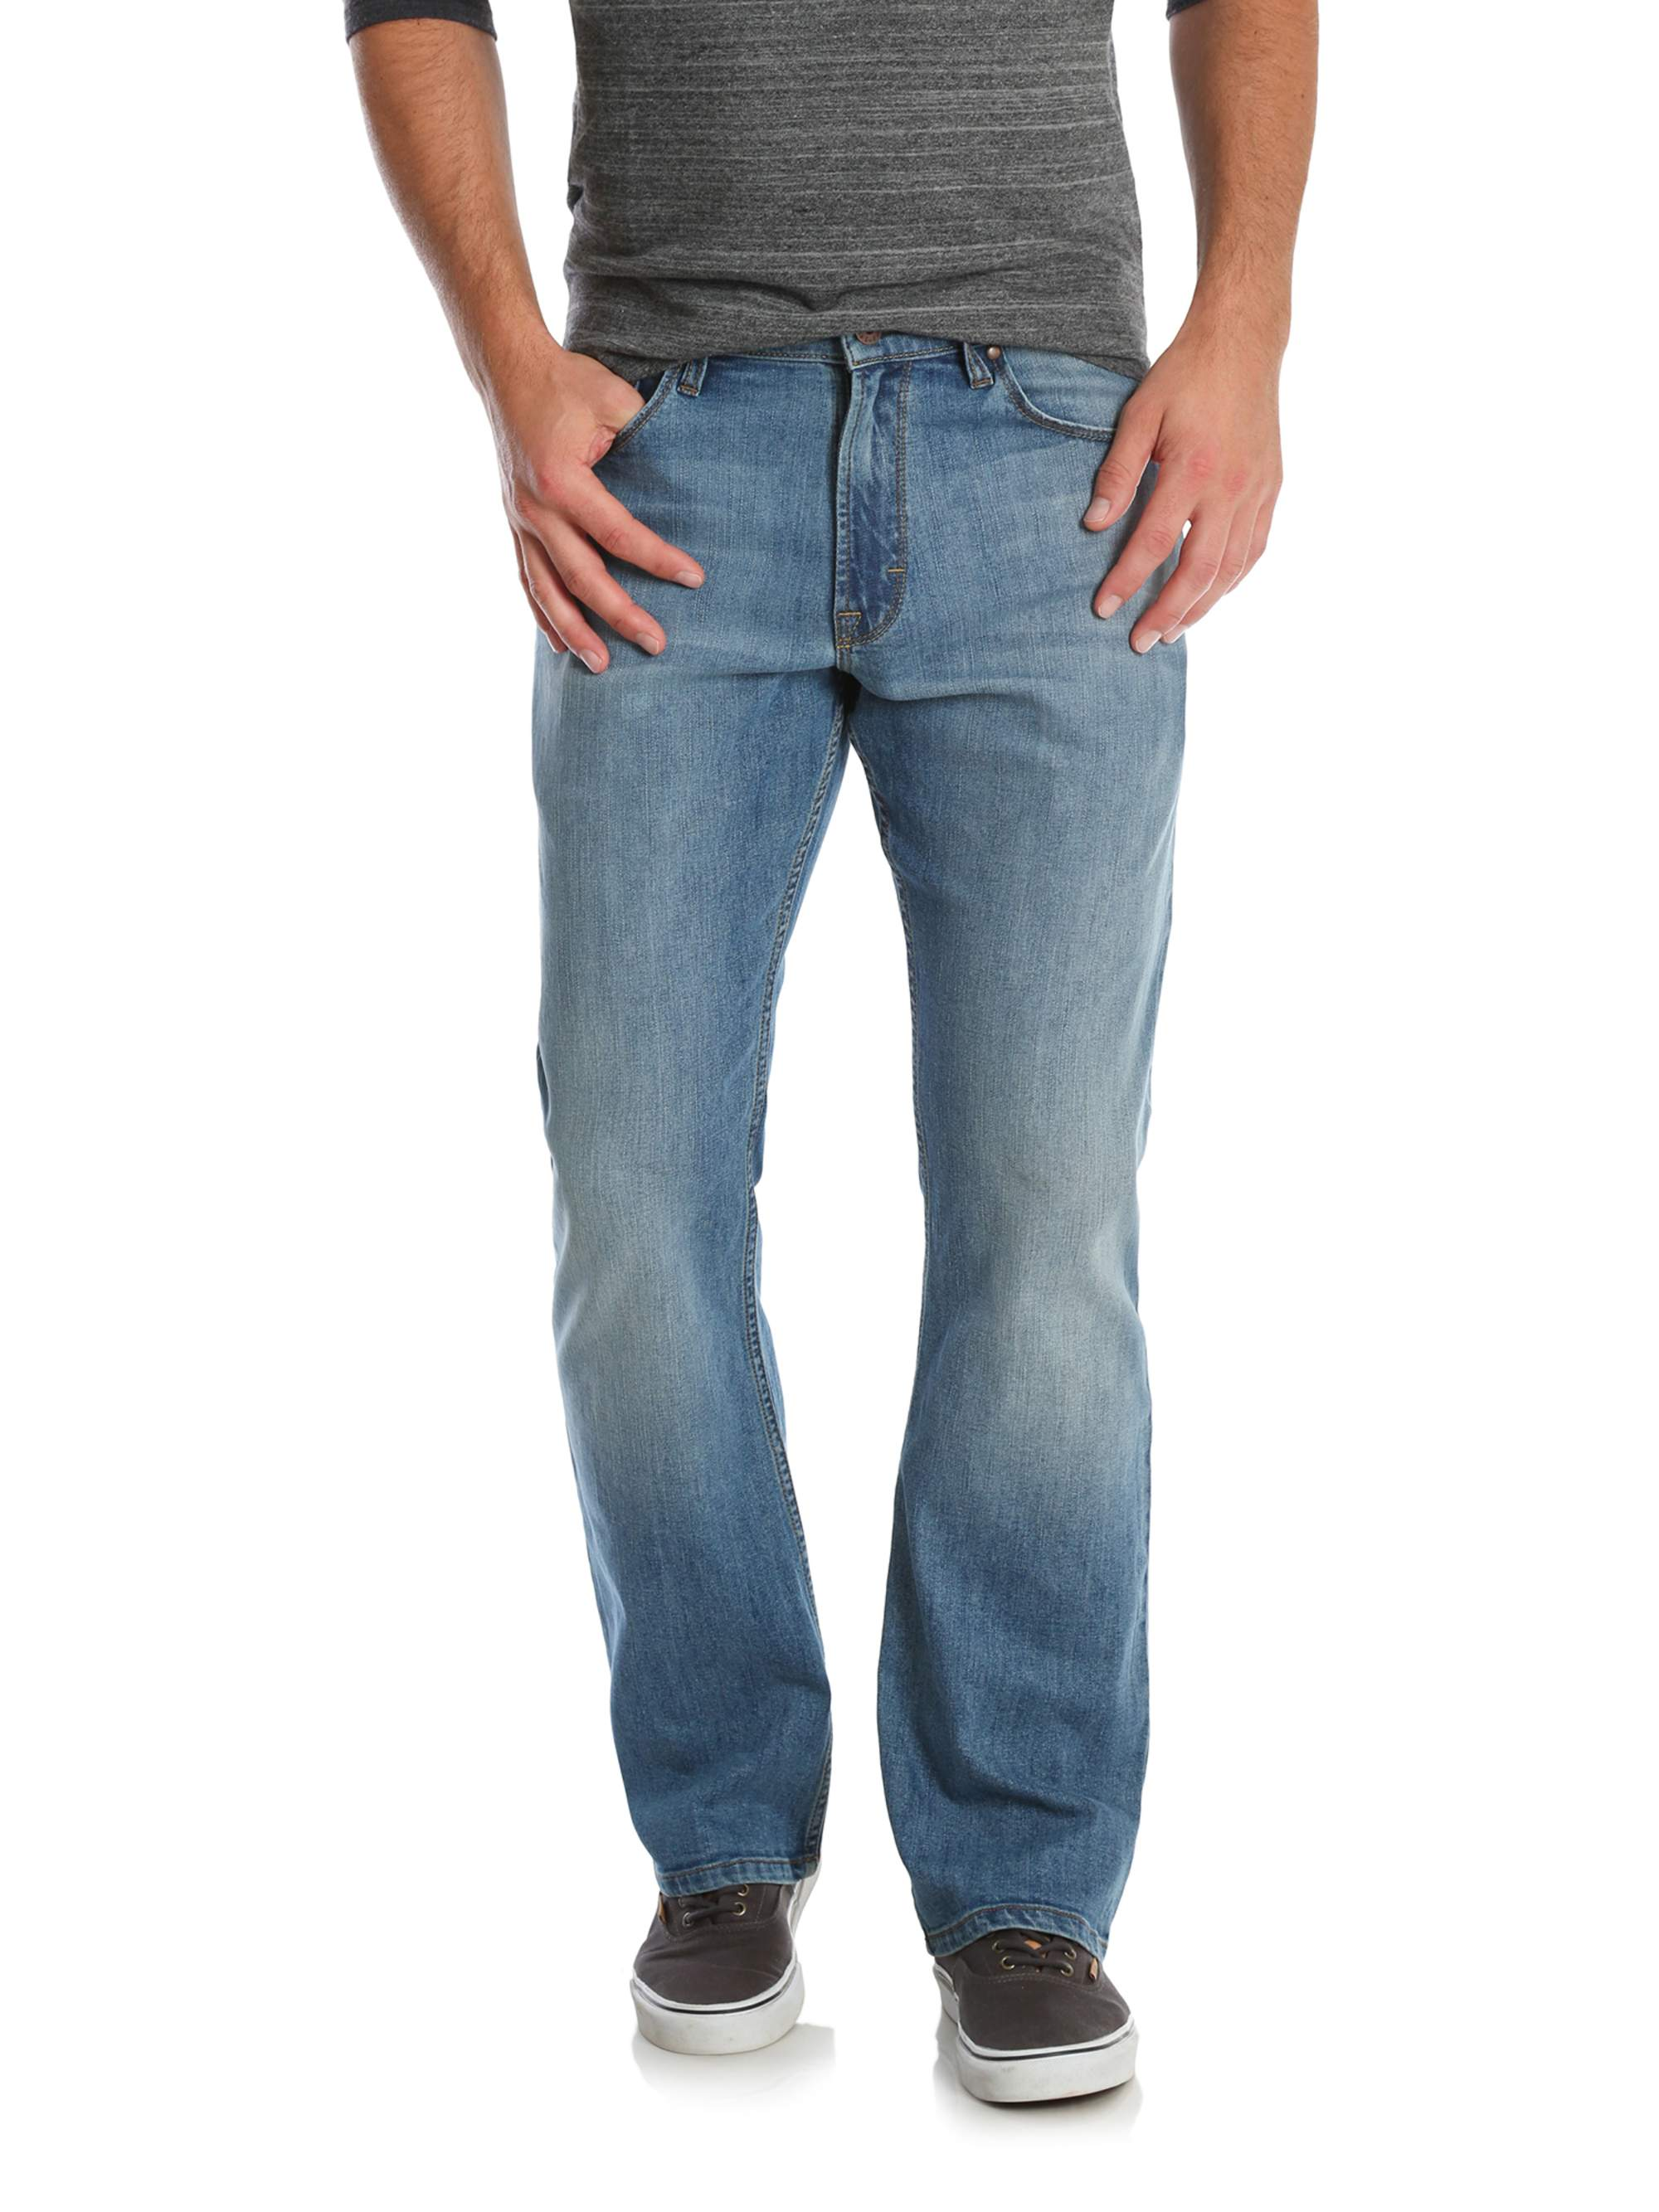 Big Men's Relaxed Boot Jean with Stretch